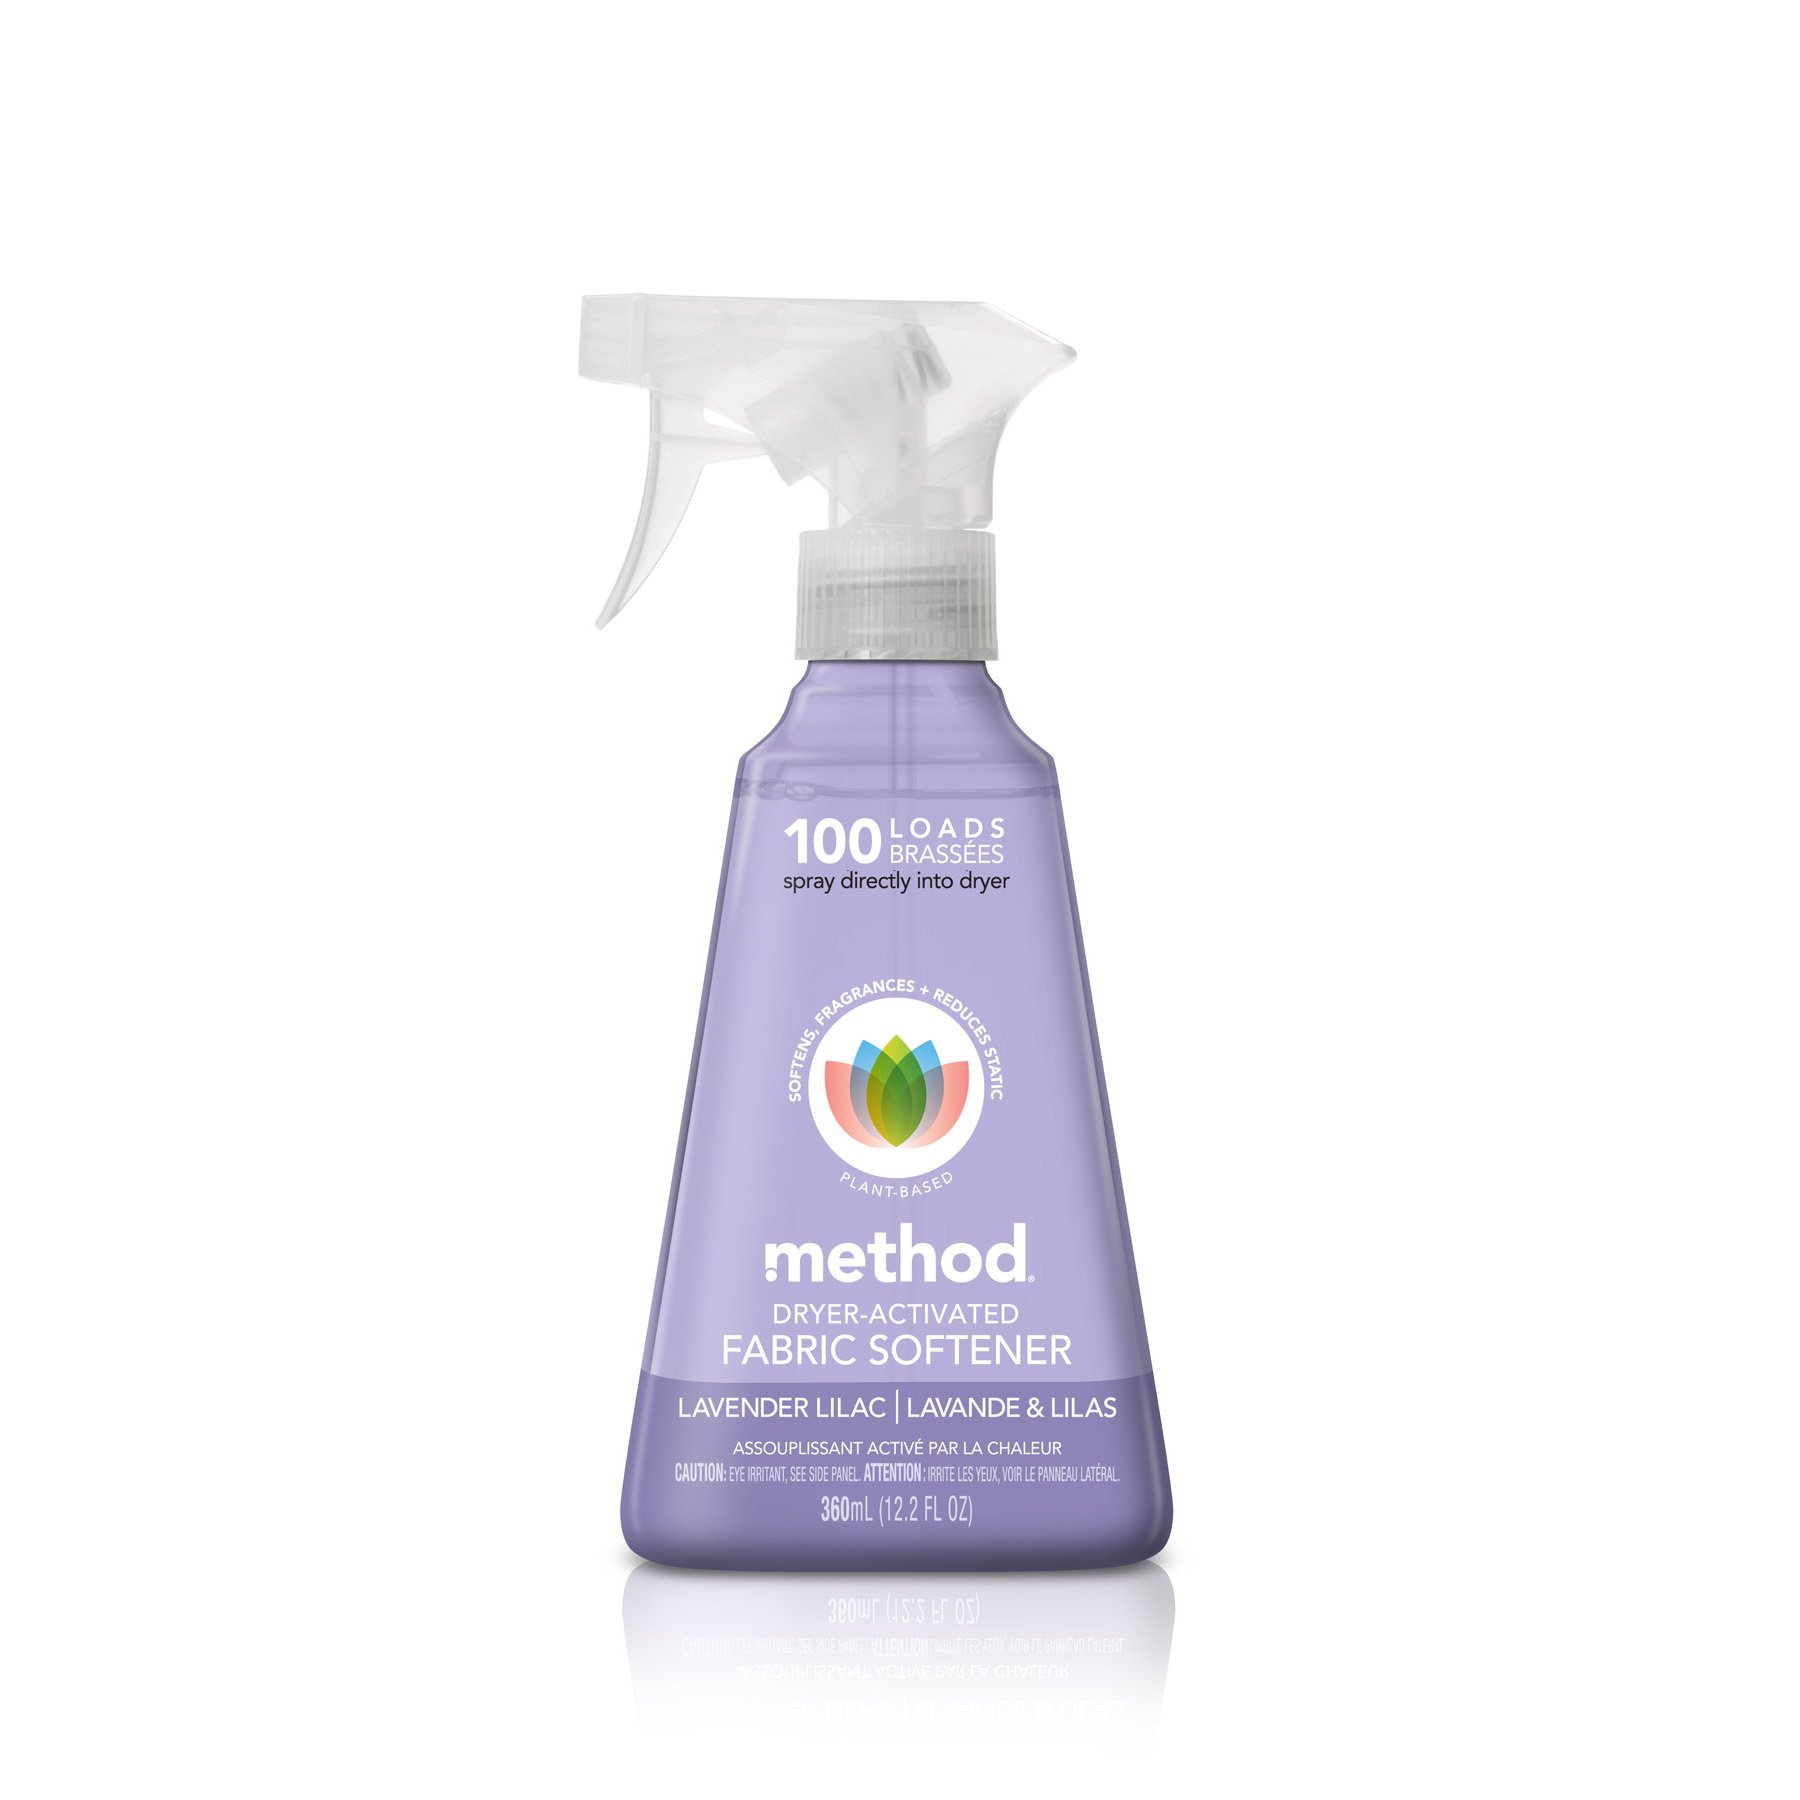 Method Dryer Activated Fabric Softener Spray 100 loads, Lavender Lilac